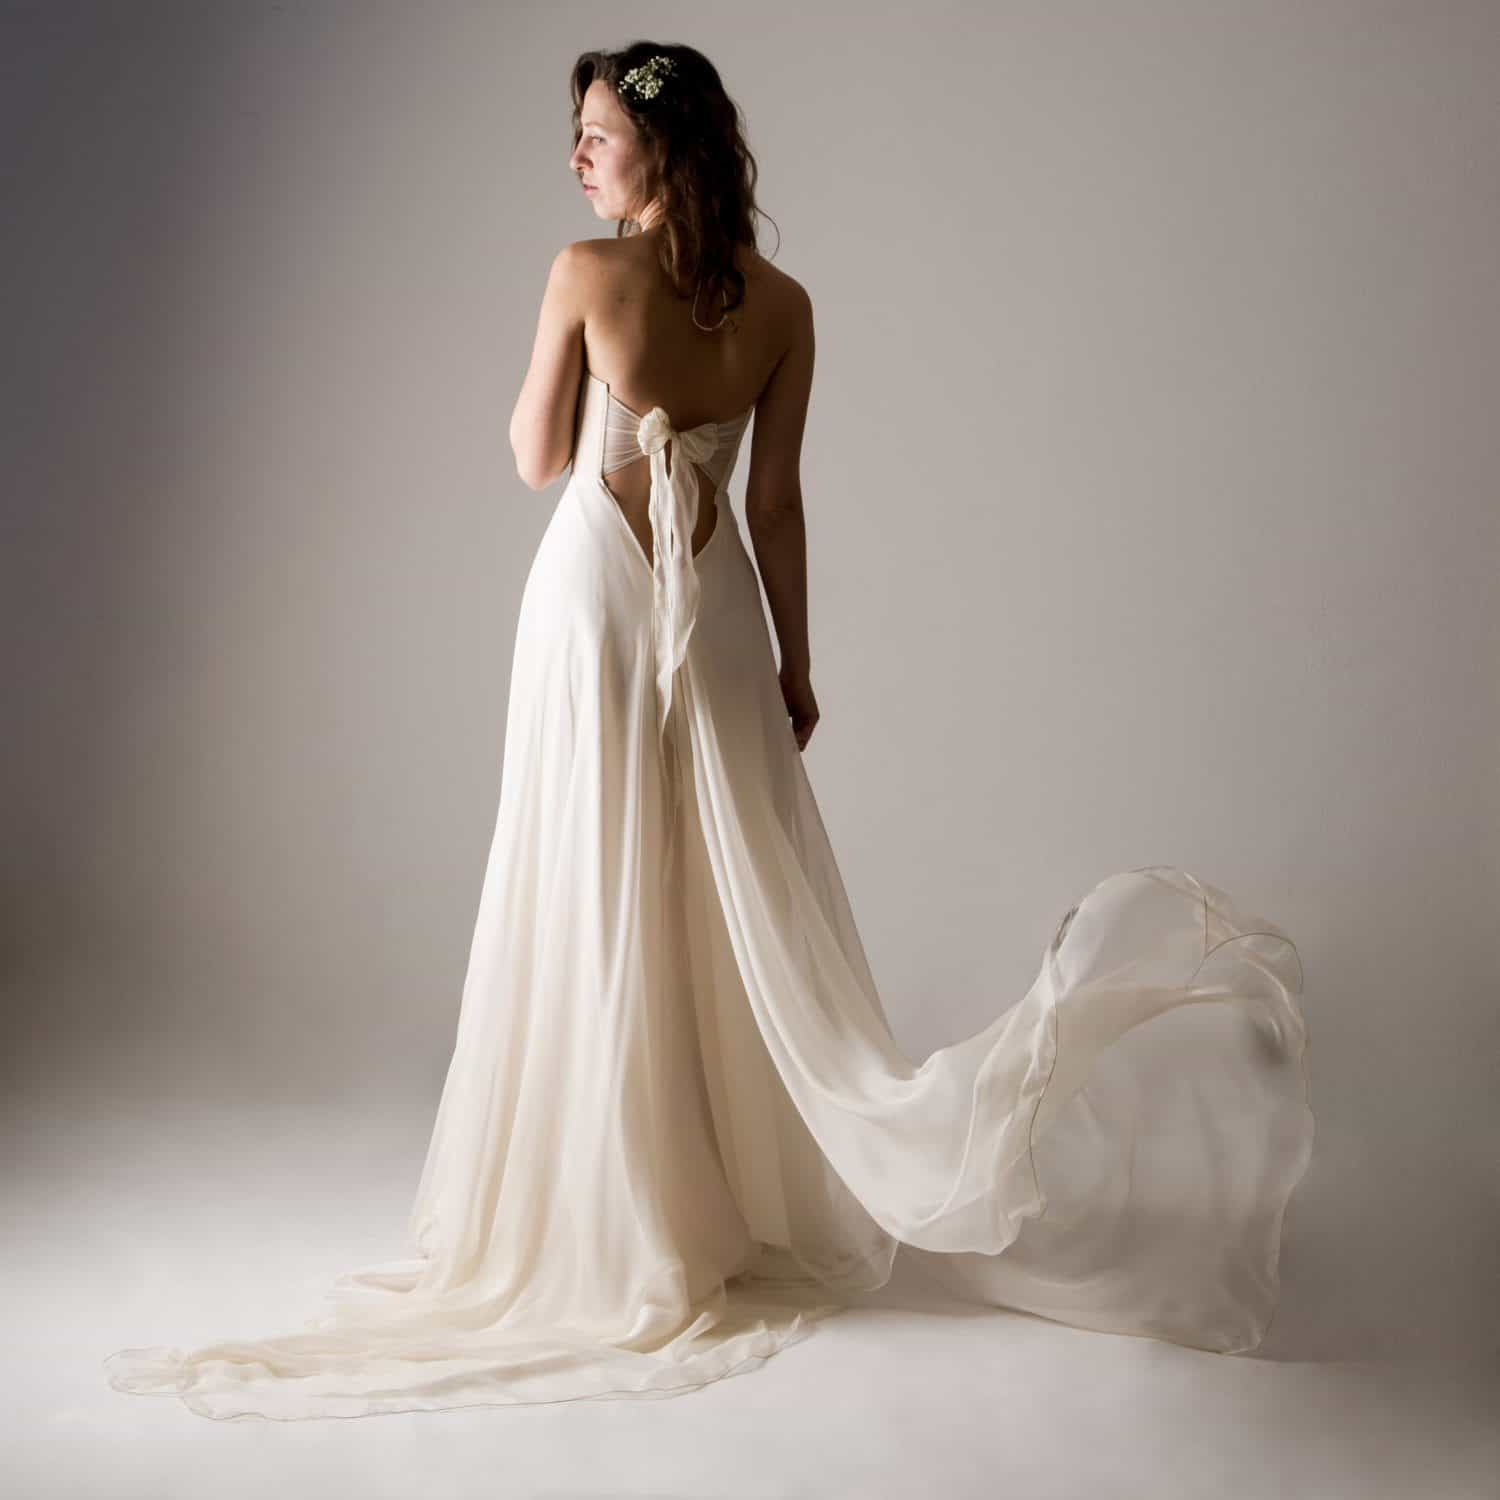 Backless Wedding Dresses.Acanthus Fairy Backless Wedding Dress